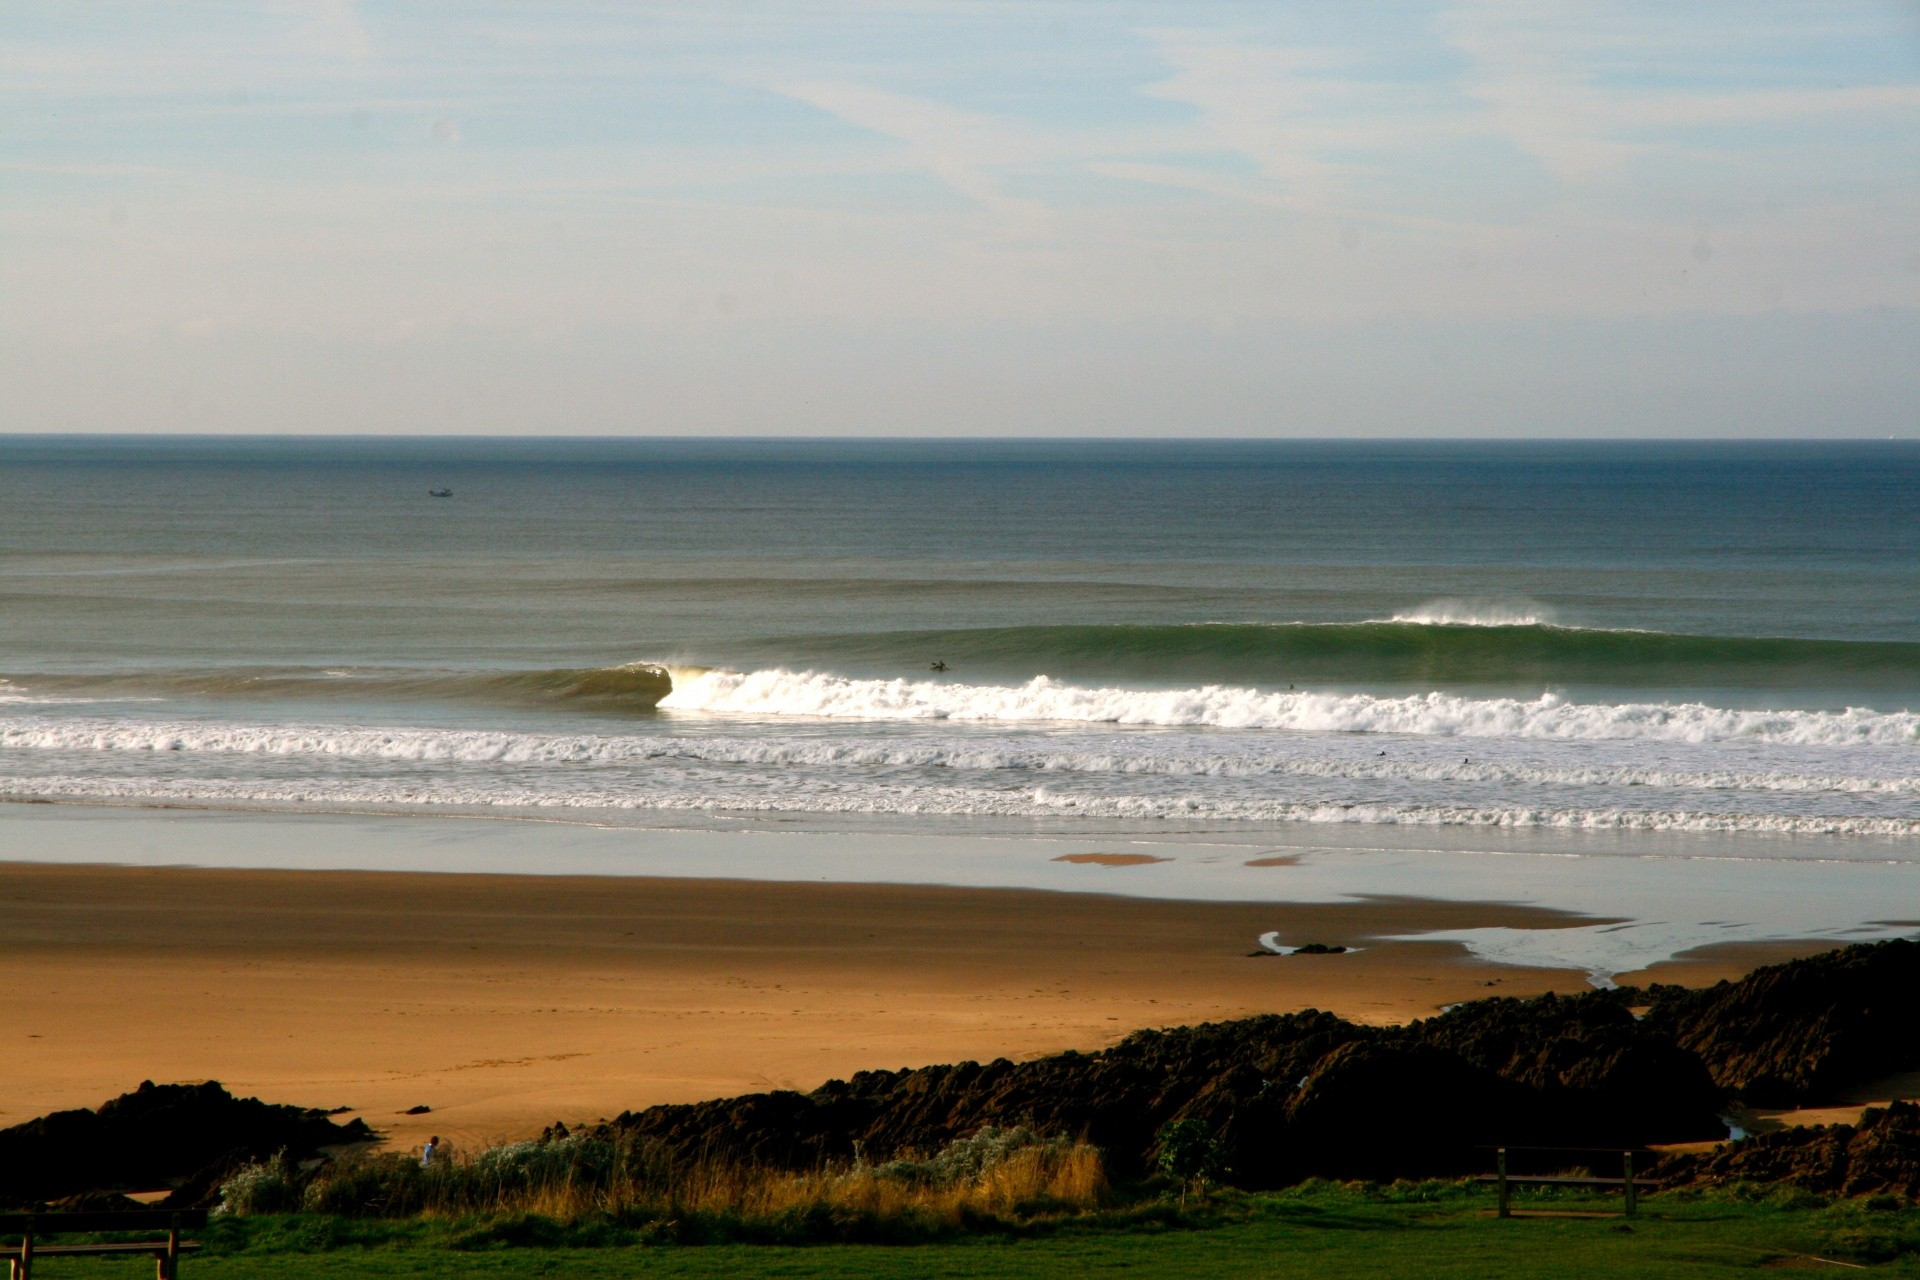 RI Baber's photo of Croyde Beach